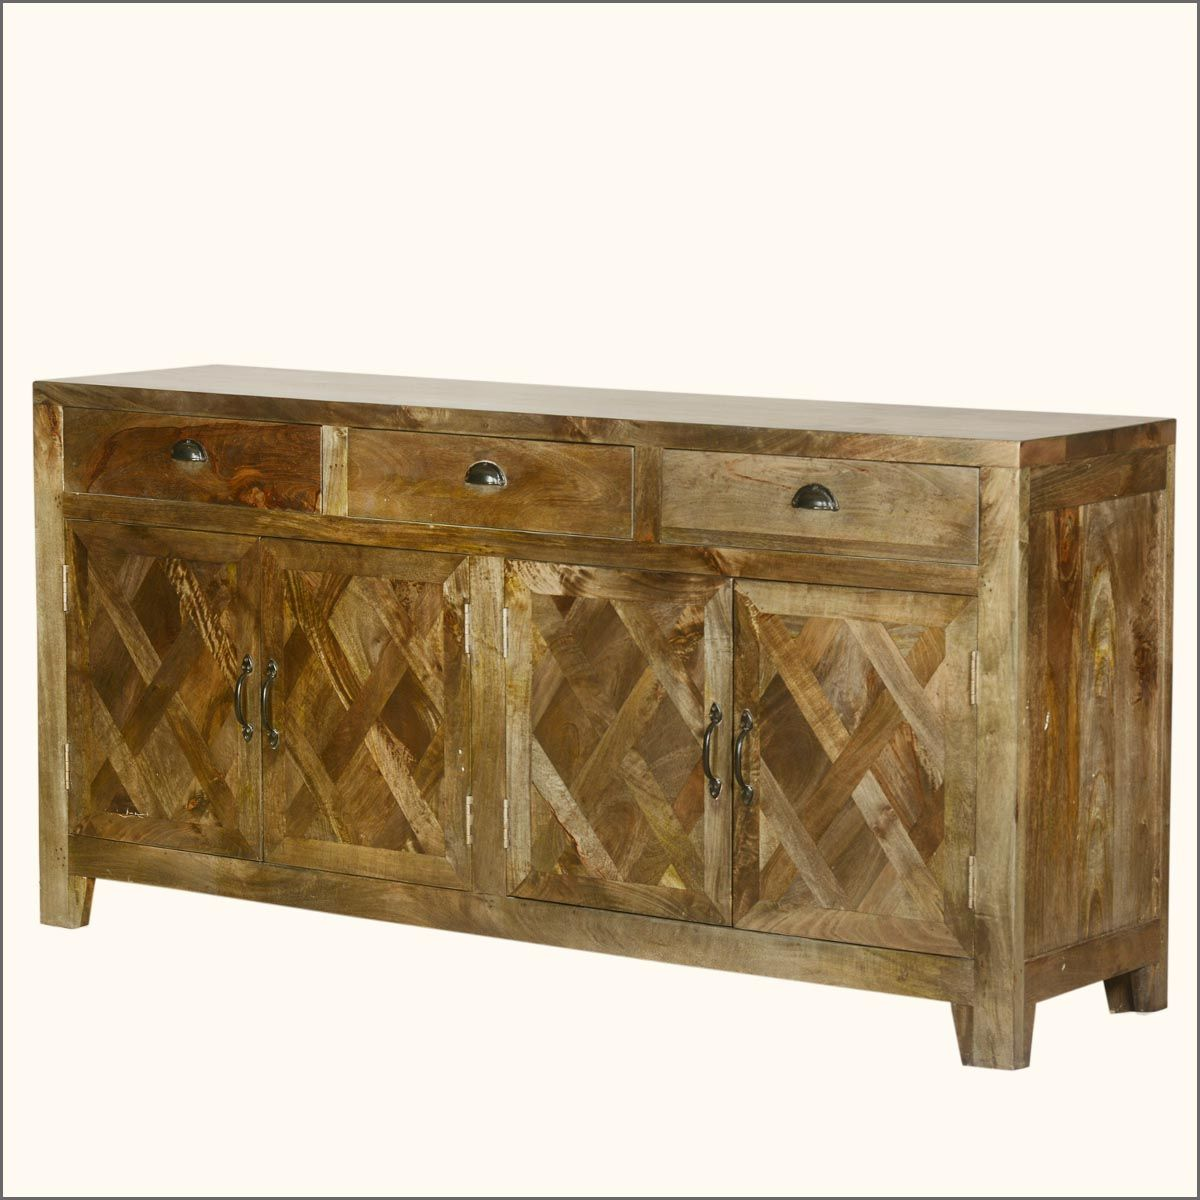 Parquet Diamond Mango Wood Sideboard Buffet Cabinet Intricately Assembled  Pieces Of Wood Create Our Dynamic Parquet